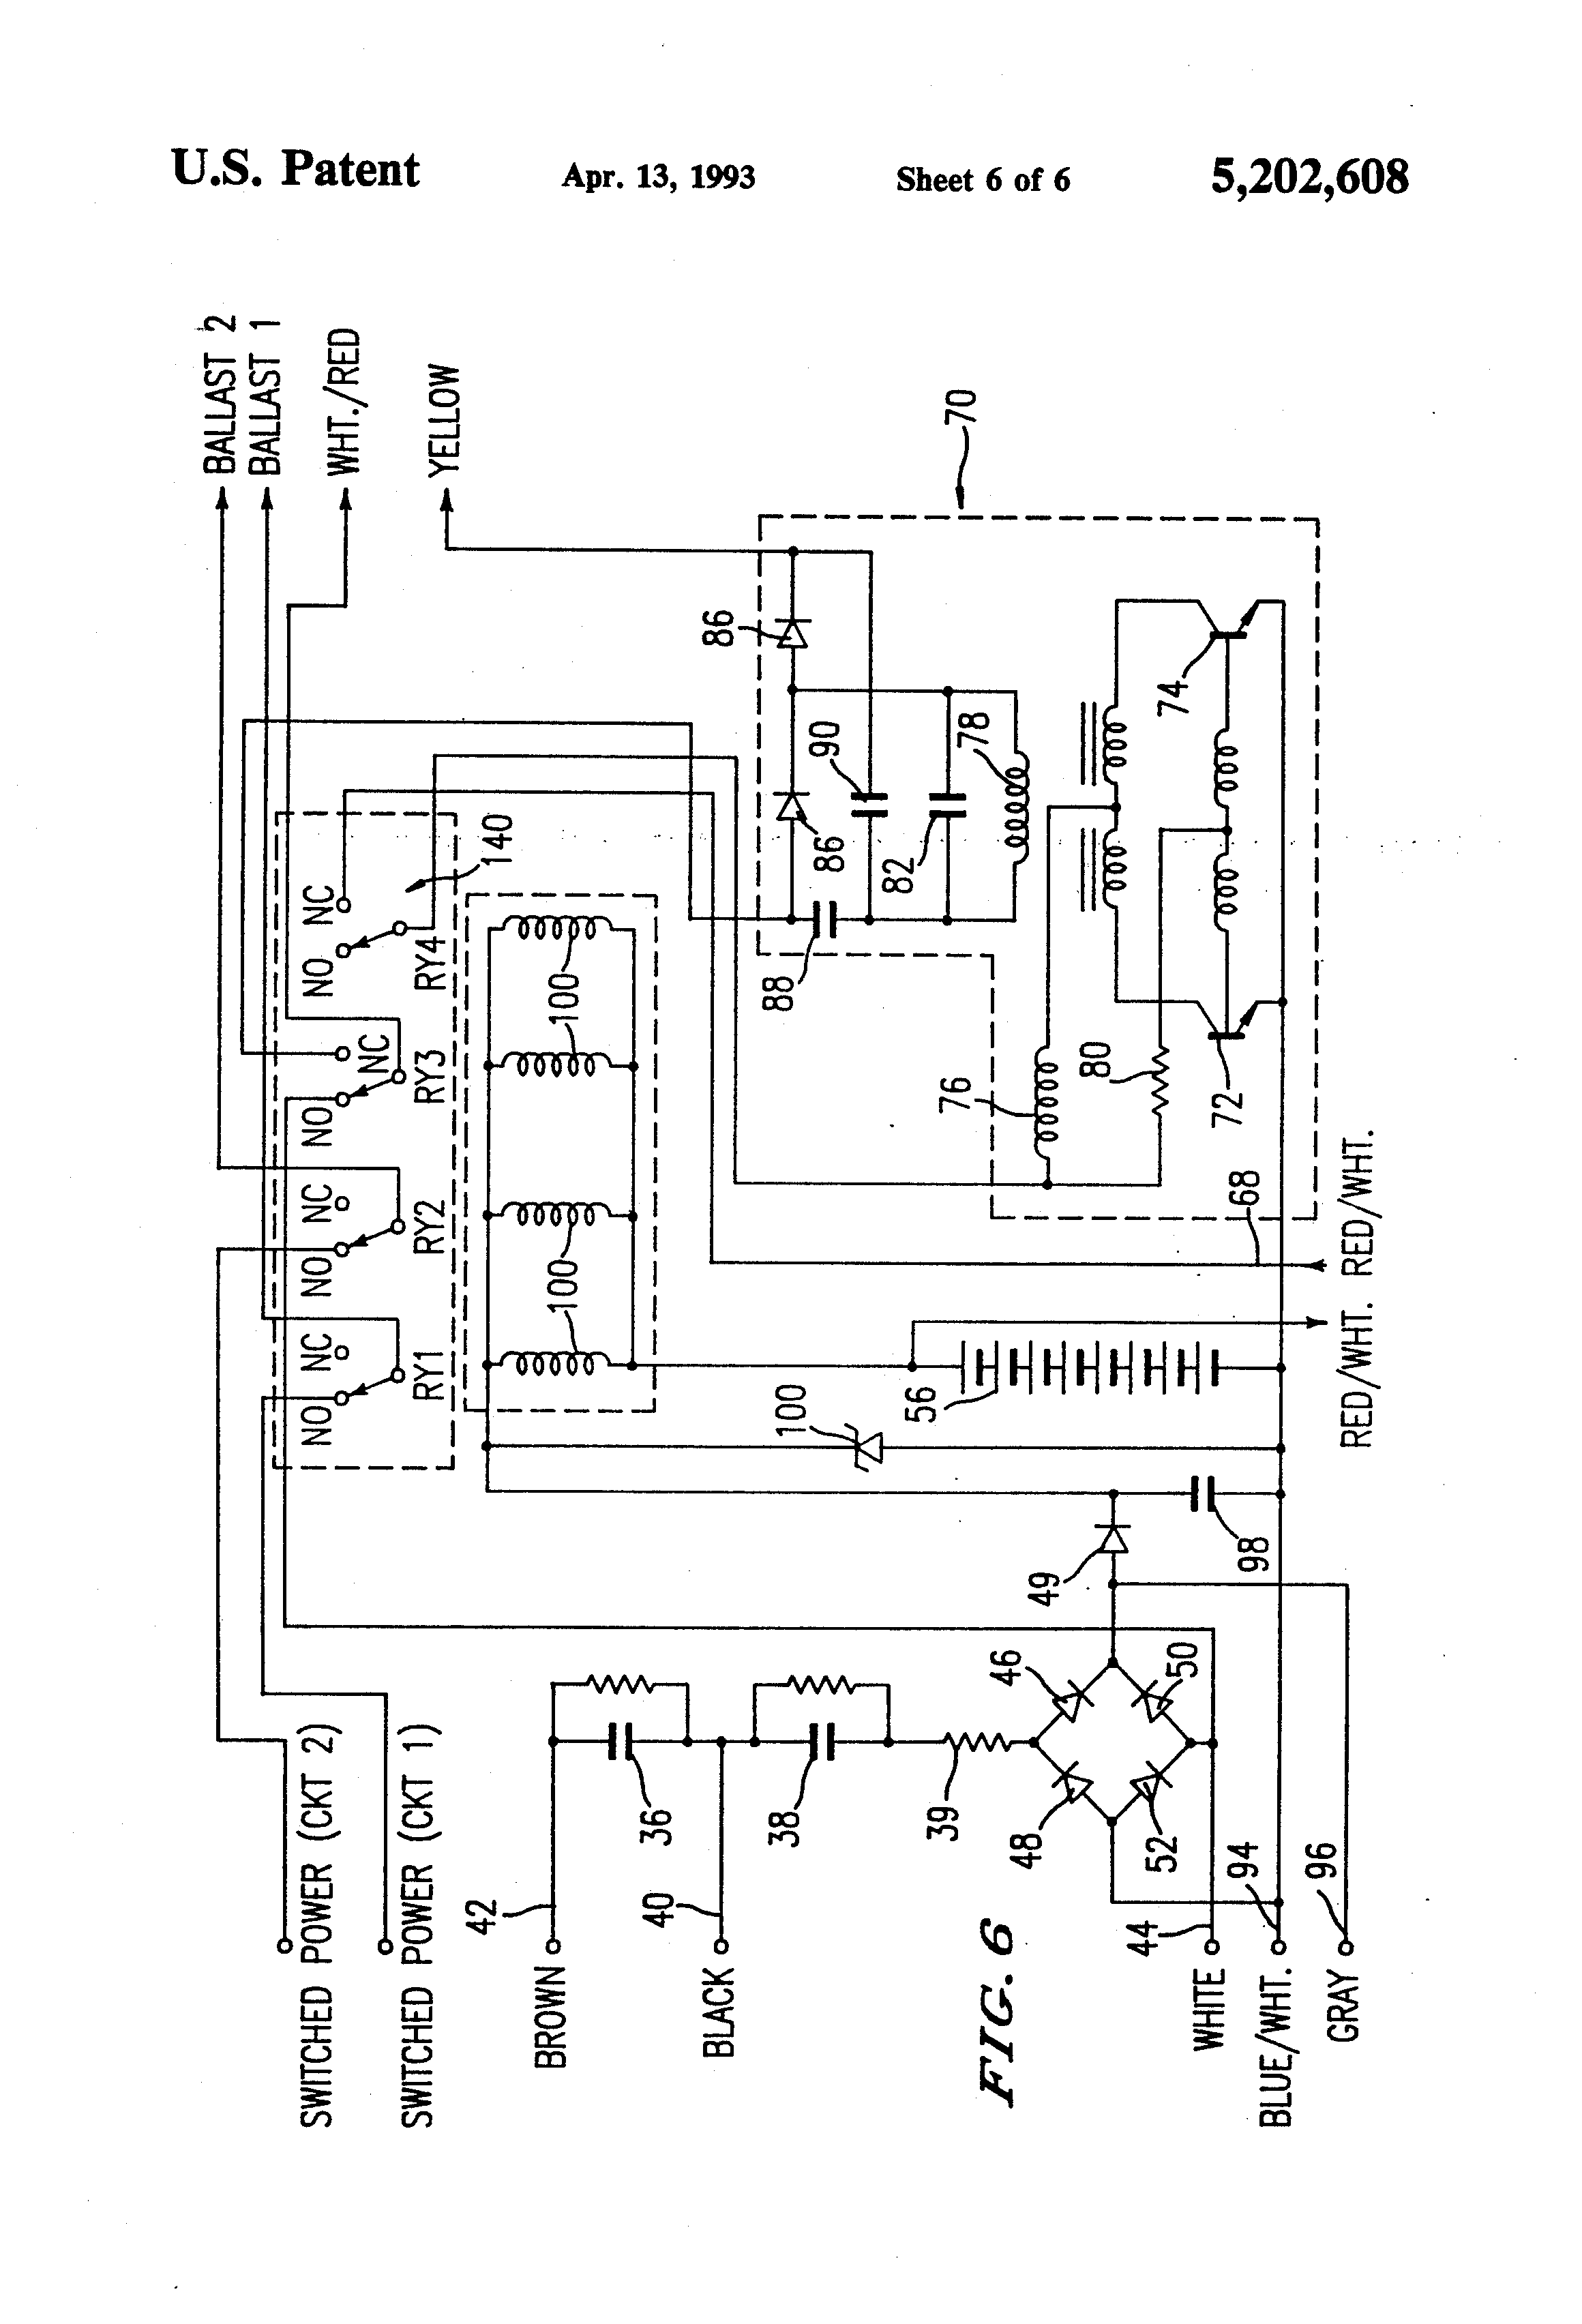 Bodine B100 Wiring Diagram : 26 Wiring Diagram Images